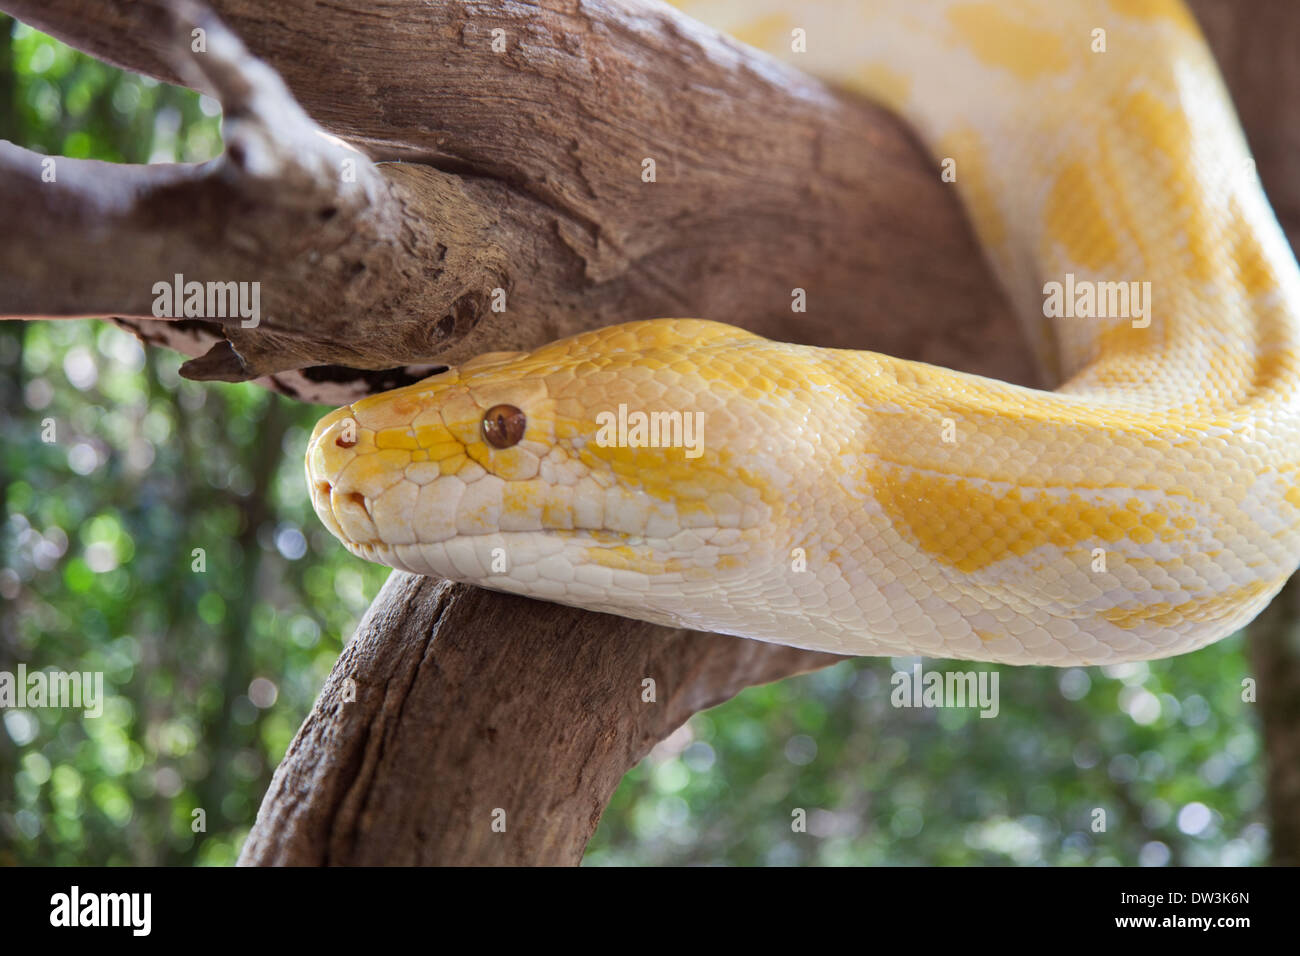 A Yellow Python in a Tree - Stock Image